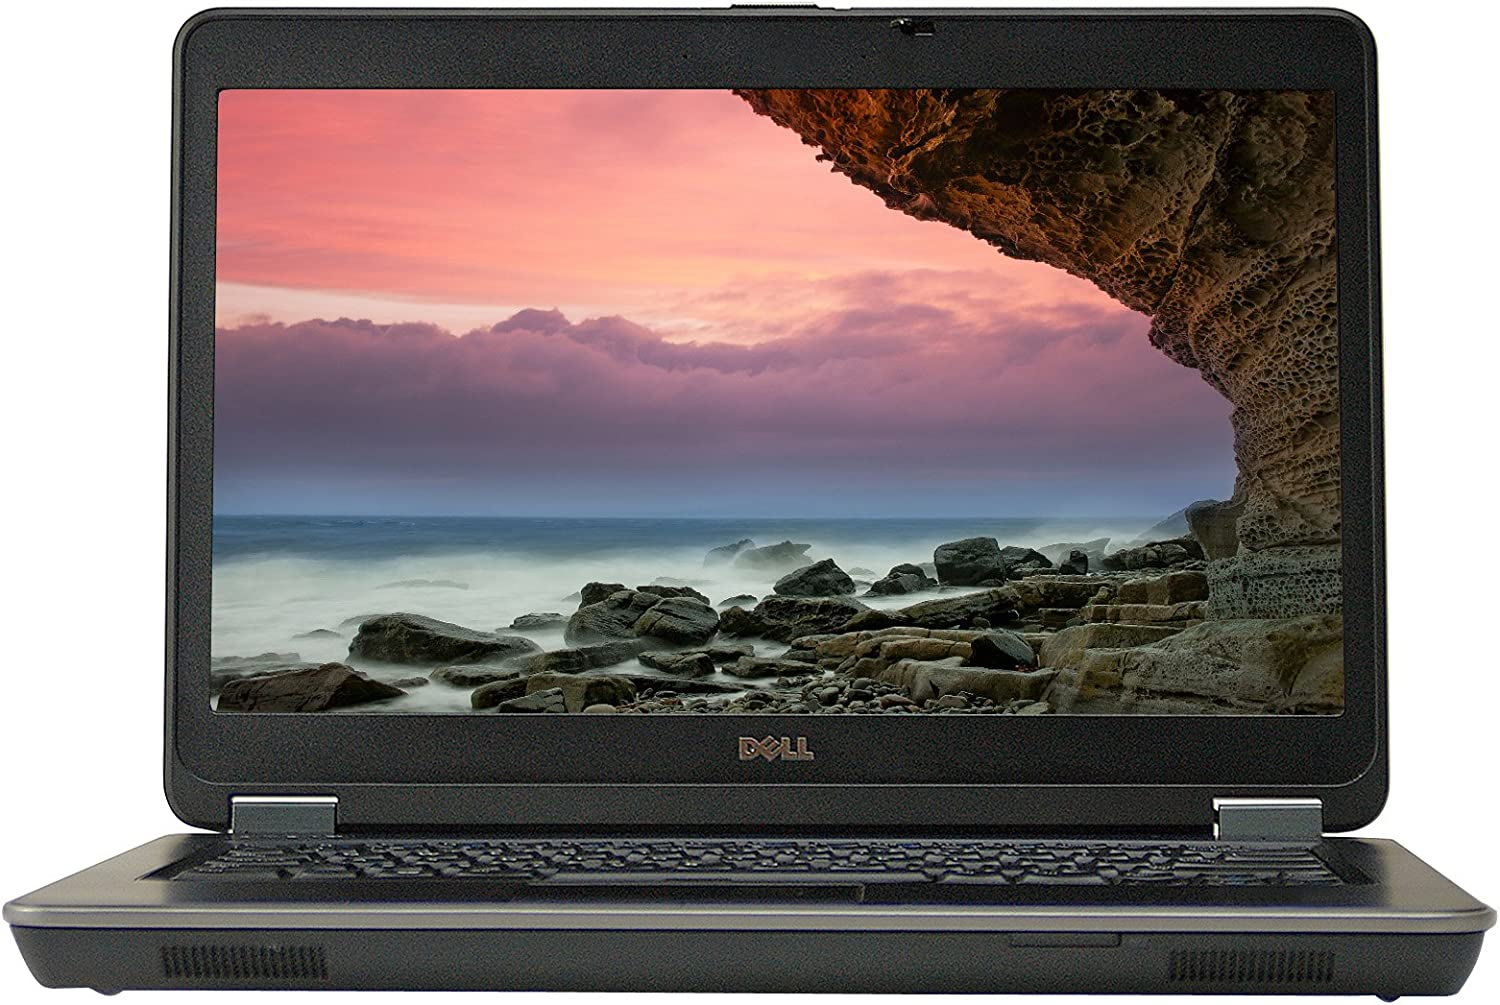 DELL Latitude E6440 14in Laptop, Core i7-4600M 2.9GHz, 8GB Ram, 256GB SSD, DVDRW, Windows 10 Pro 64bit (Renewed)